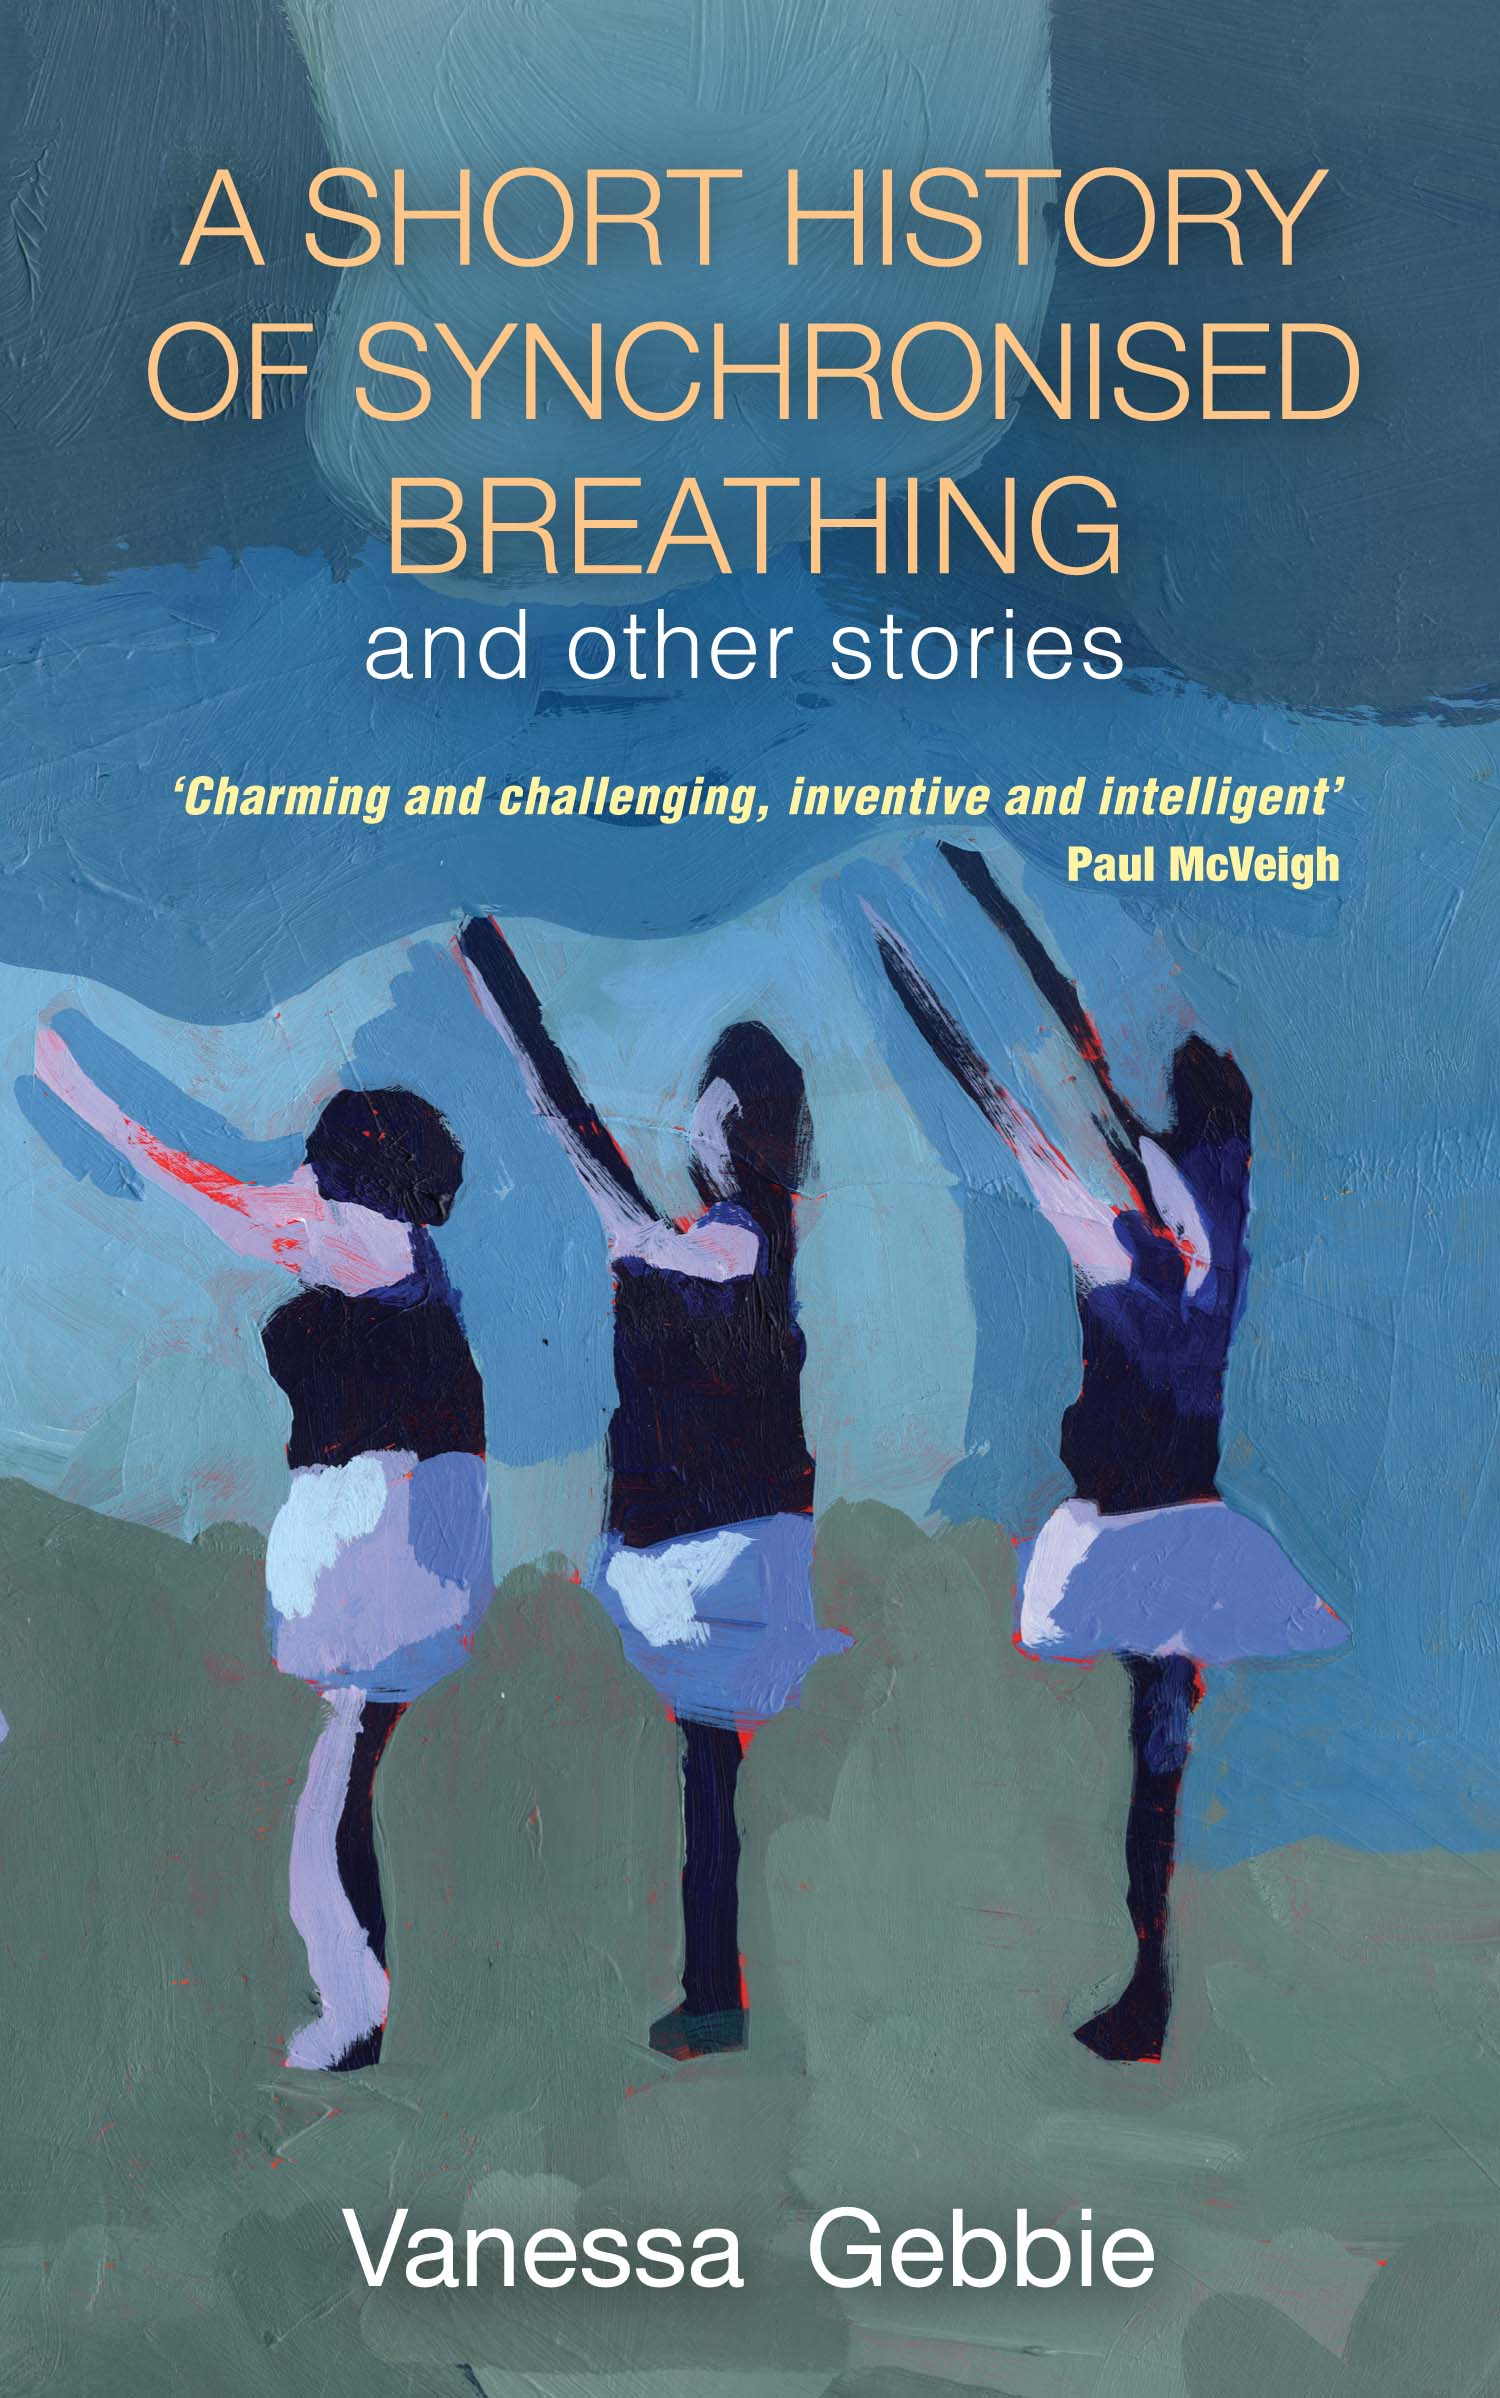 A Short History of Synchronised Breathing